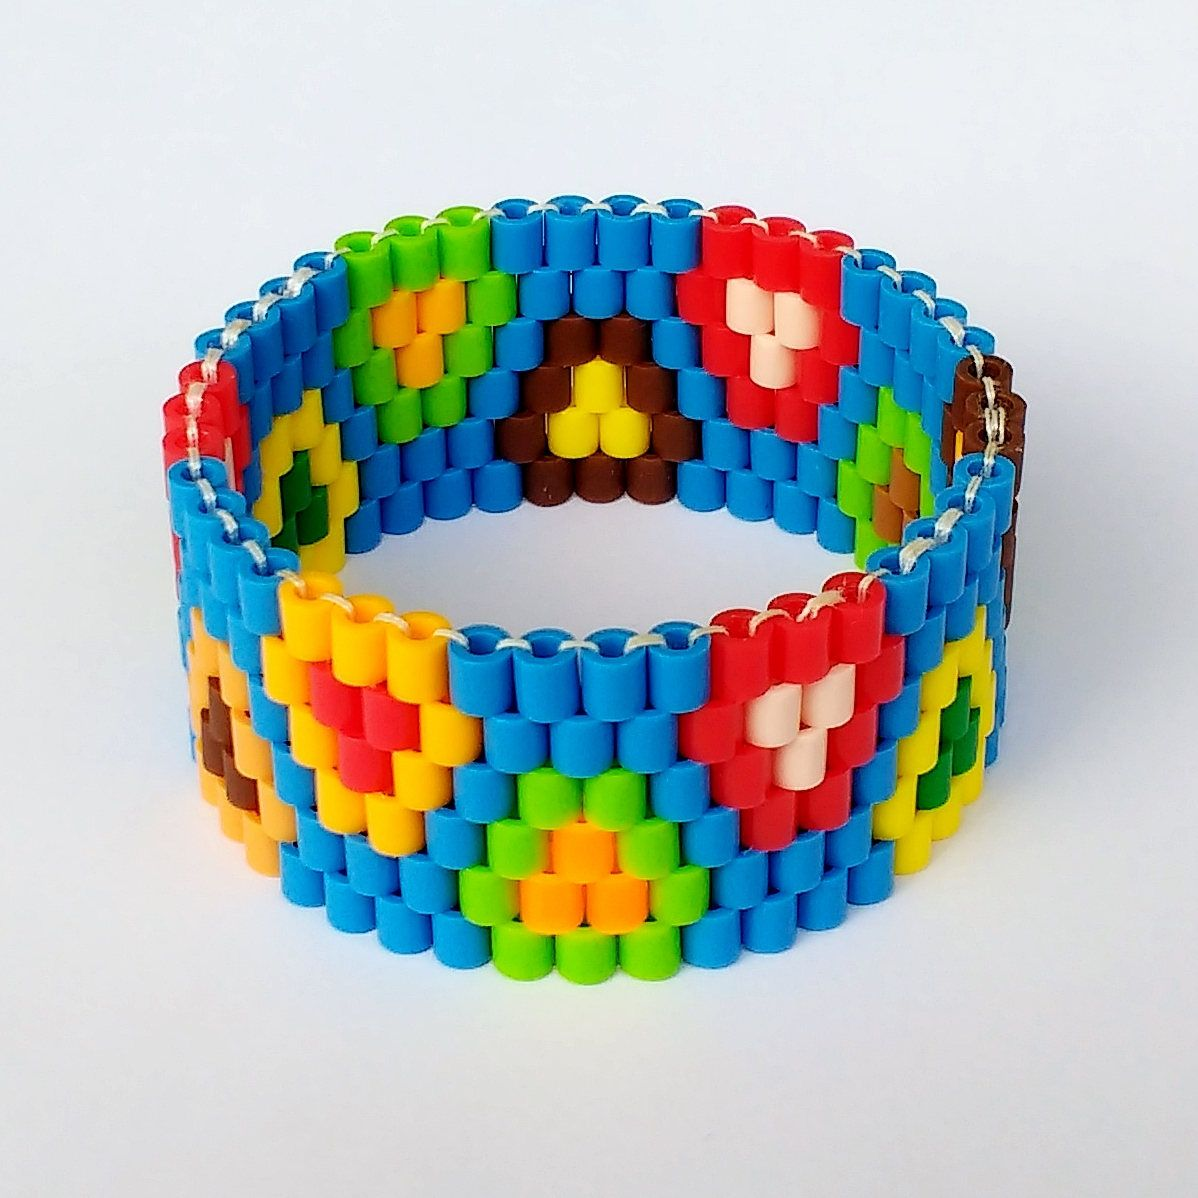 bead beaded final ways to make wikihow bracelet bracelets perler